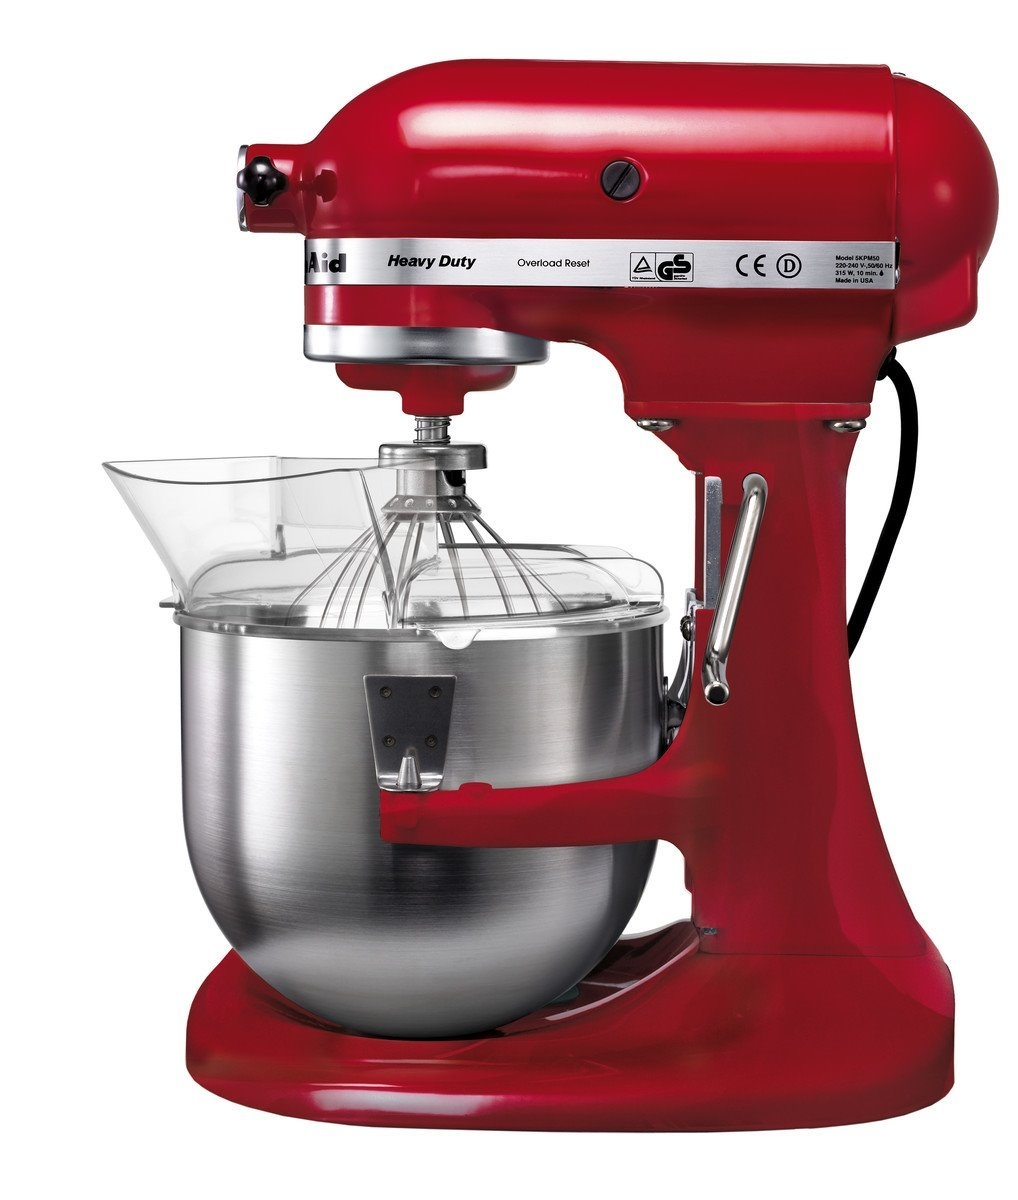 Mixer Bol Heavy Duty Kpm Trepte Viteza Kitchenaid